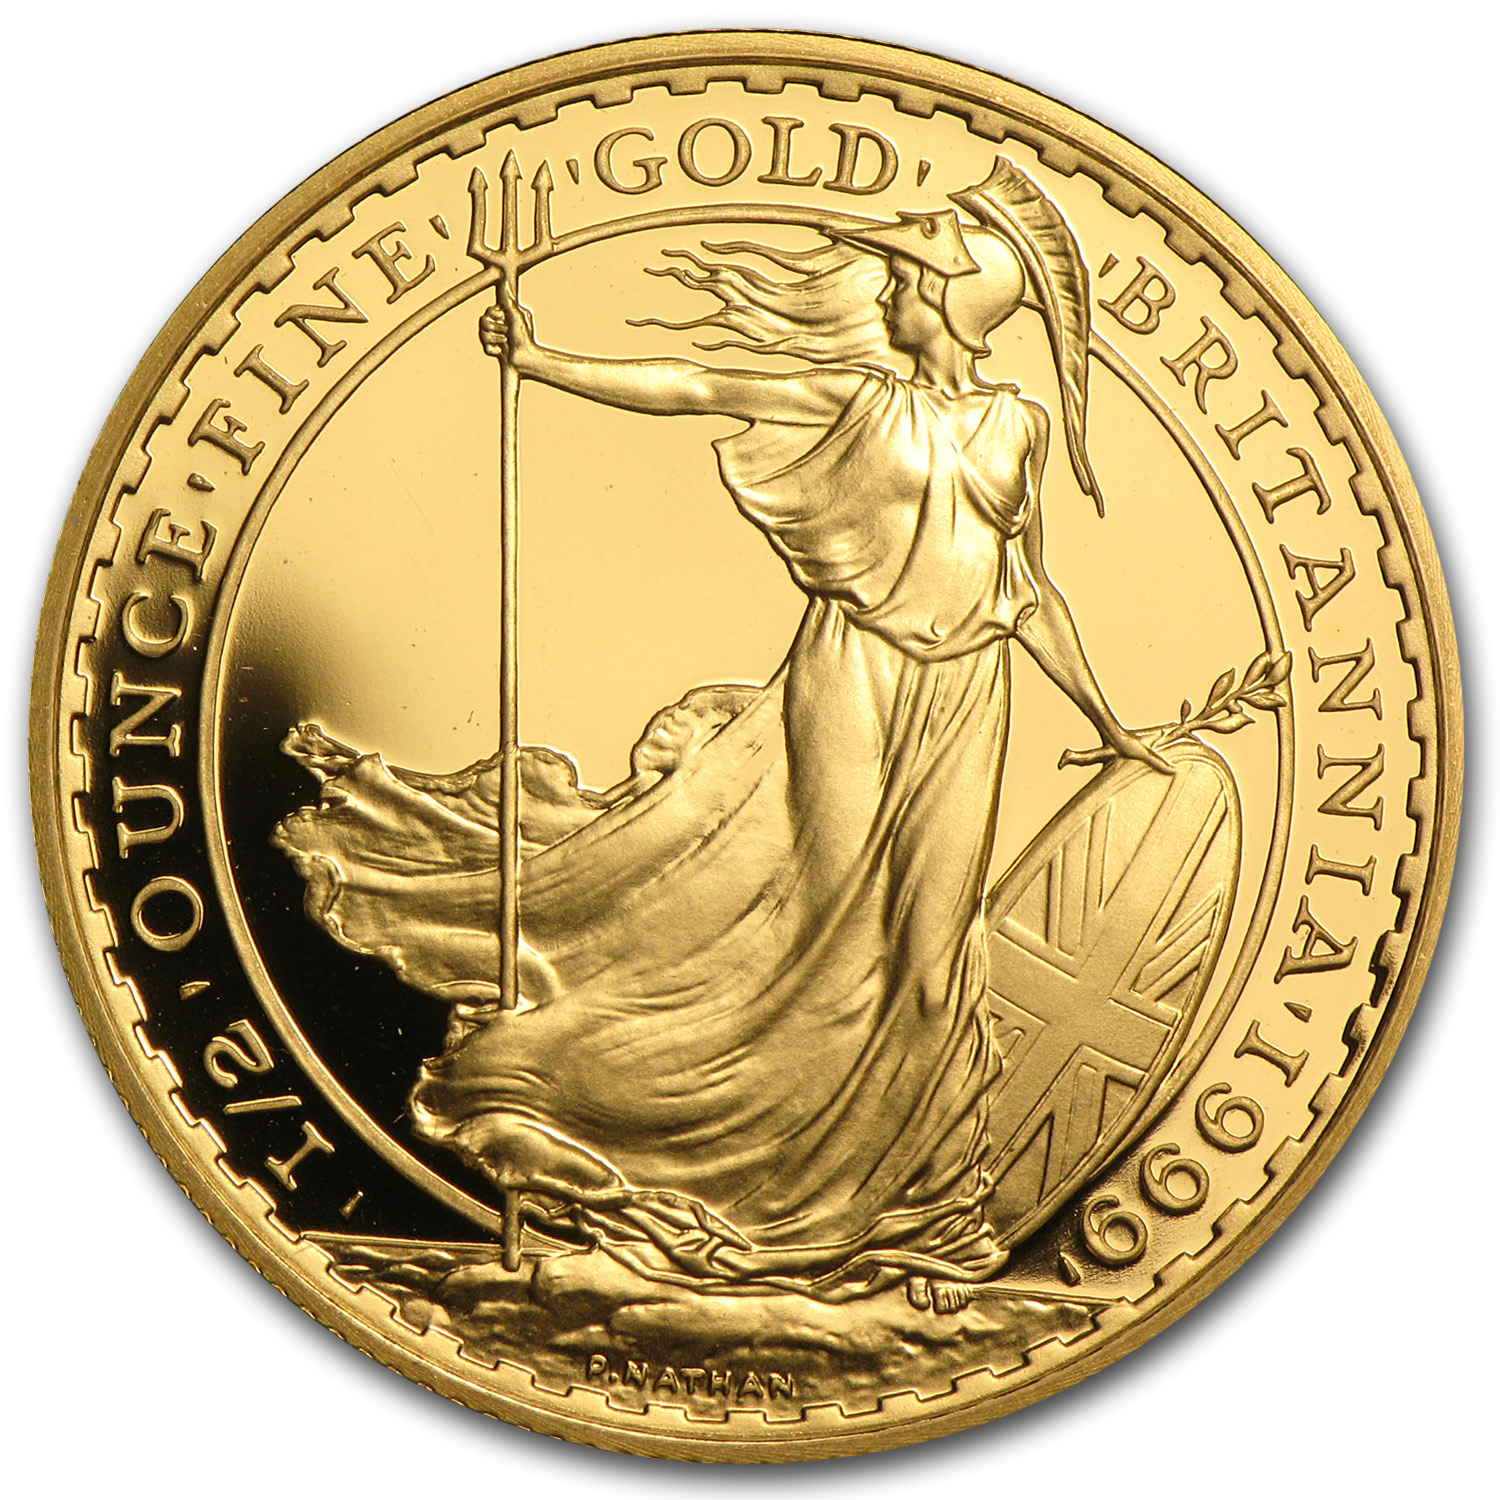 1999 1/2 oz Proof Gold Britannia